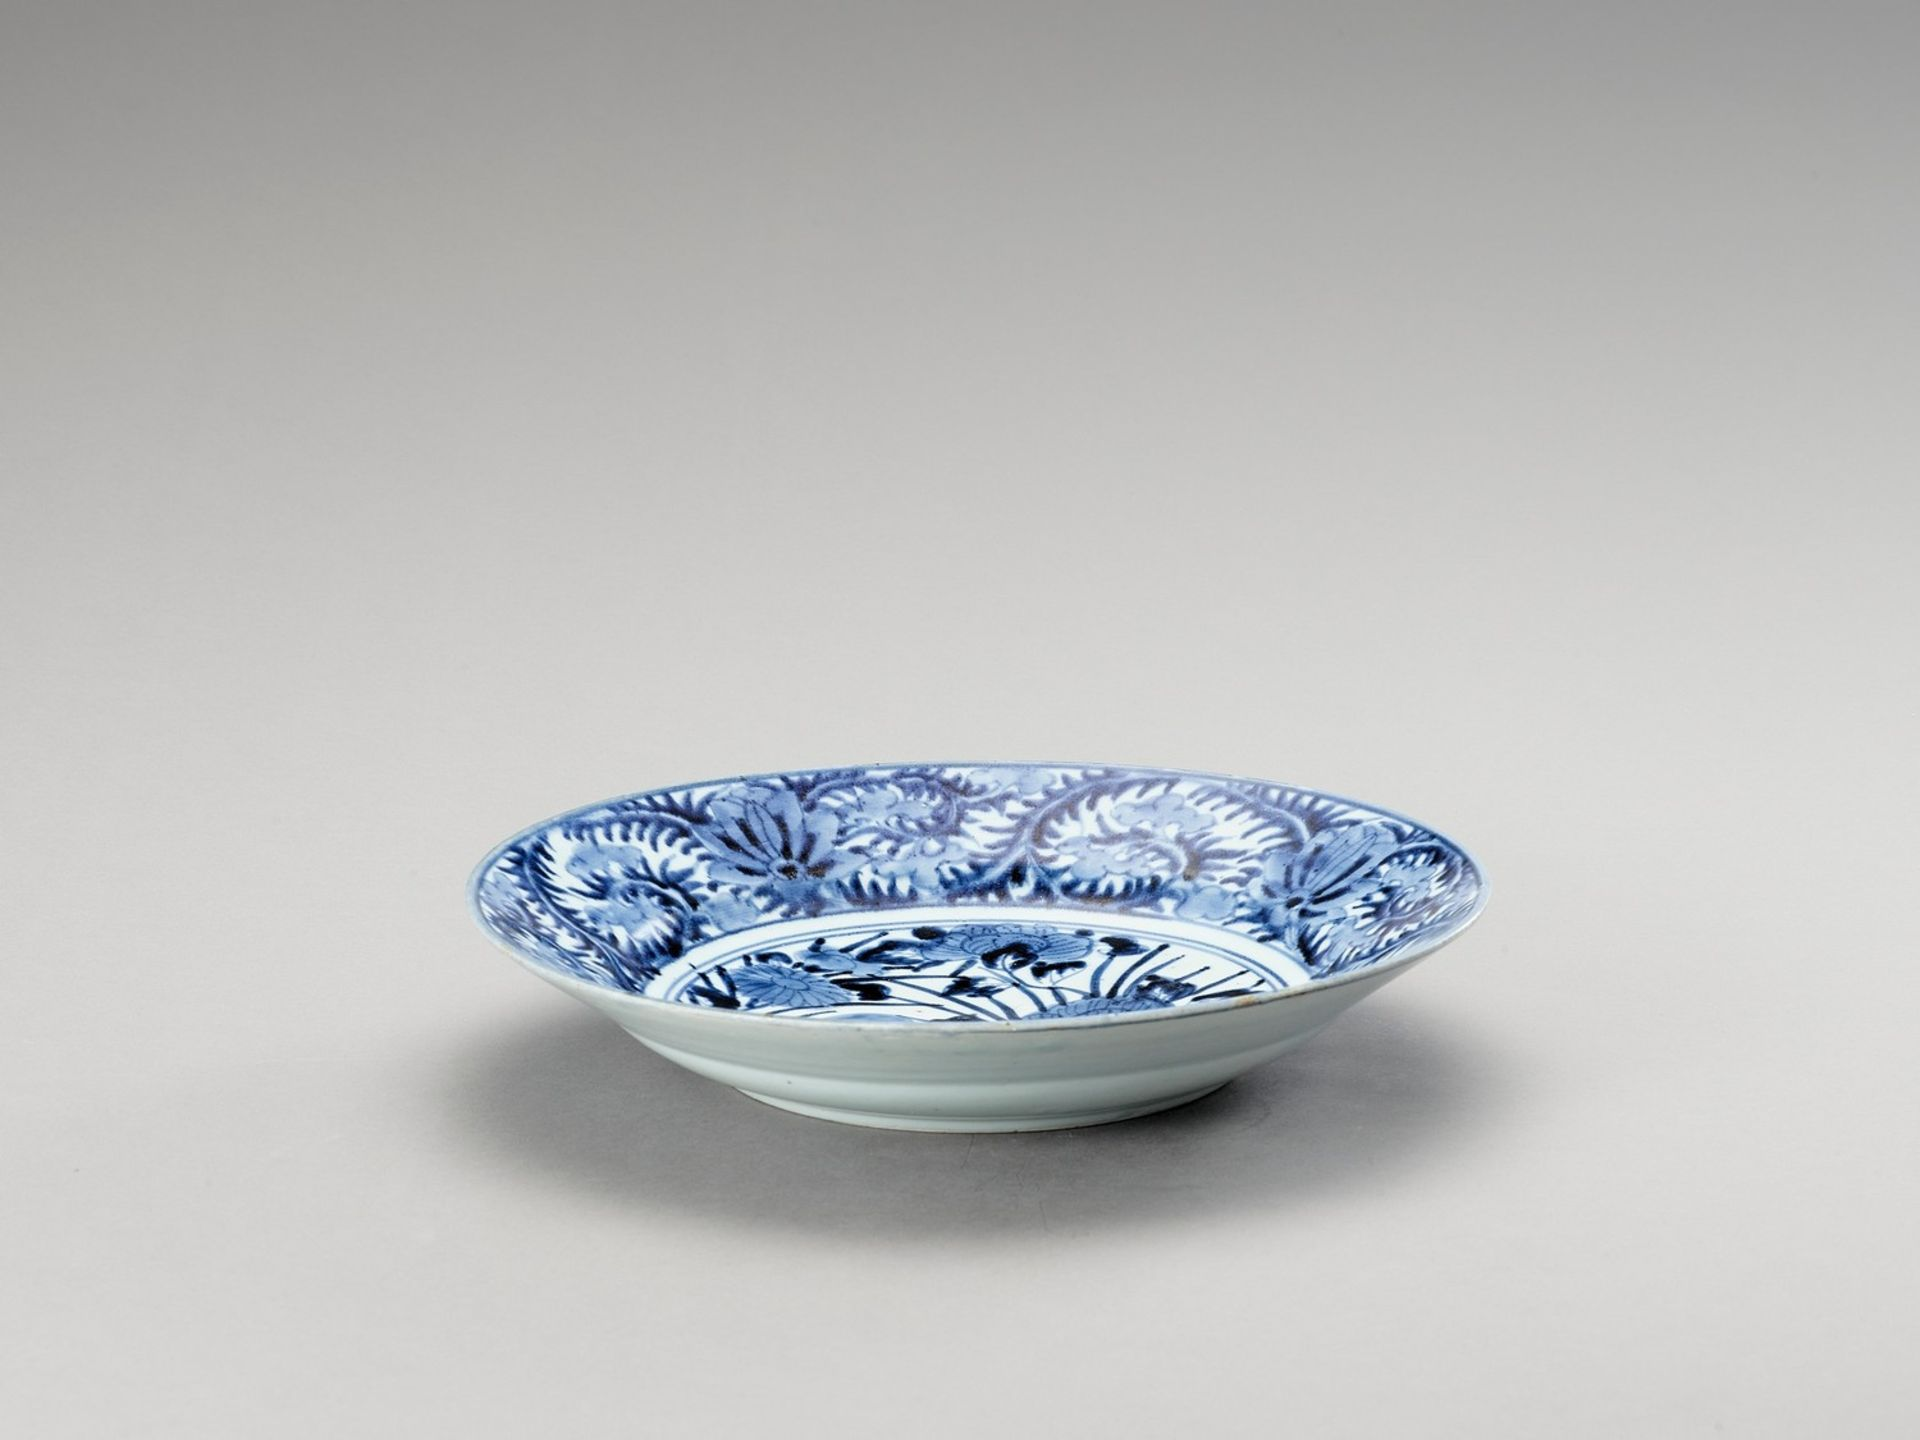 A BLUE AND WHITE 'FLORAL' PORCELAIN CHARGER - Image 2 of 4